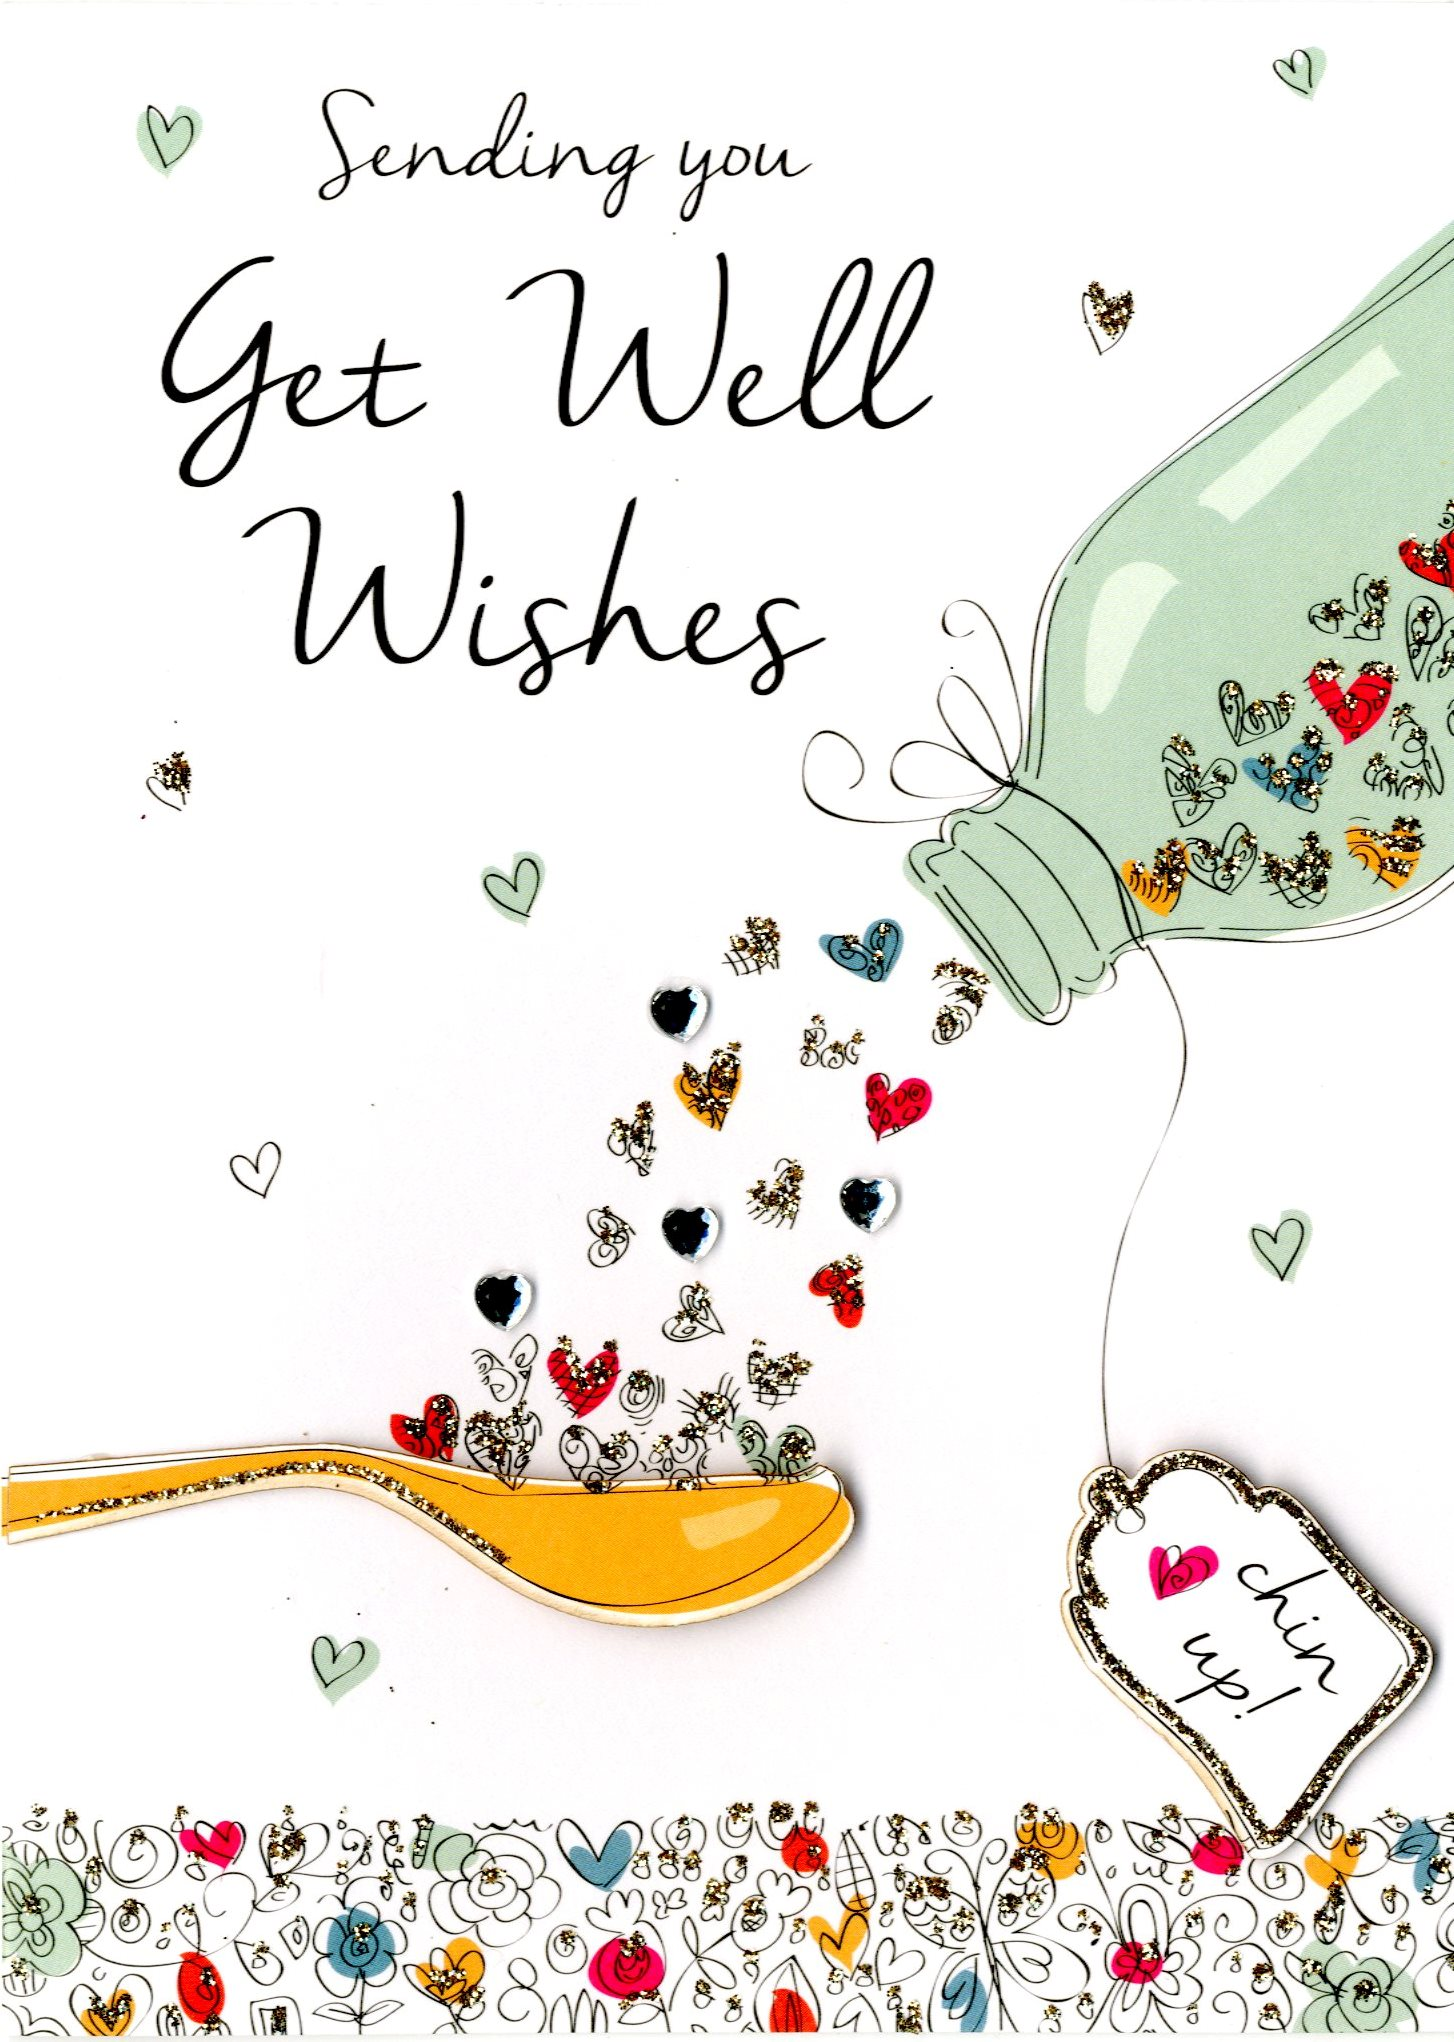 Get well wishes greeting card cards love kates get well wishes greeting card m4hsunfo